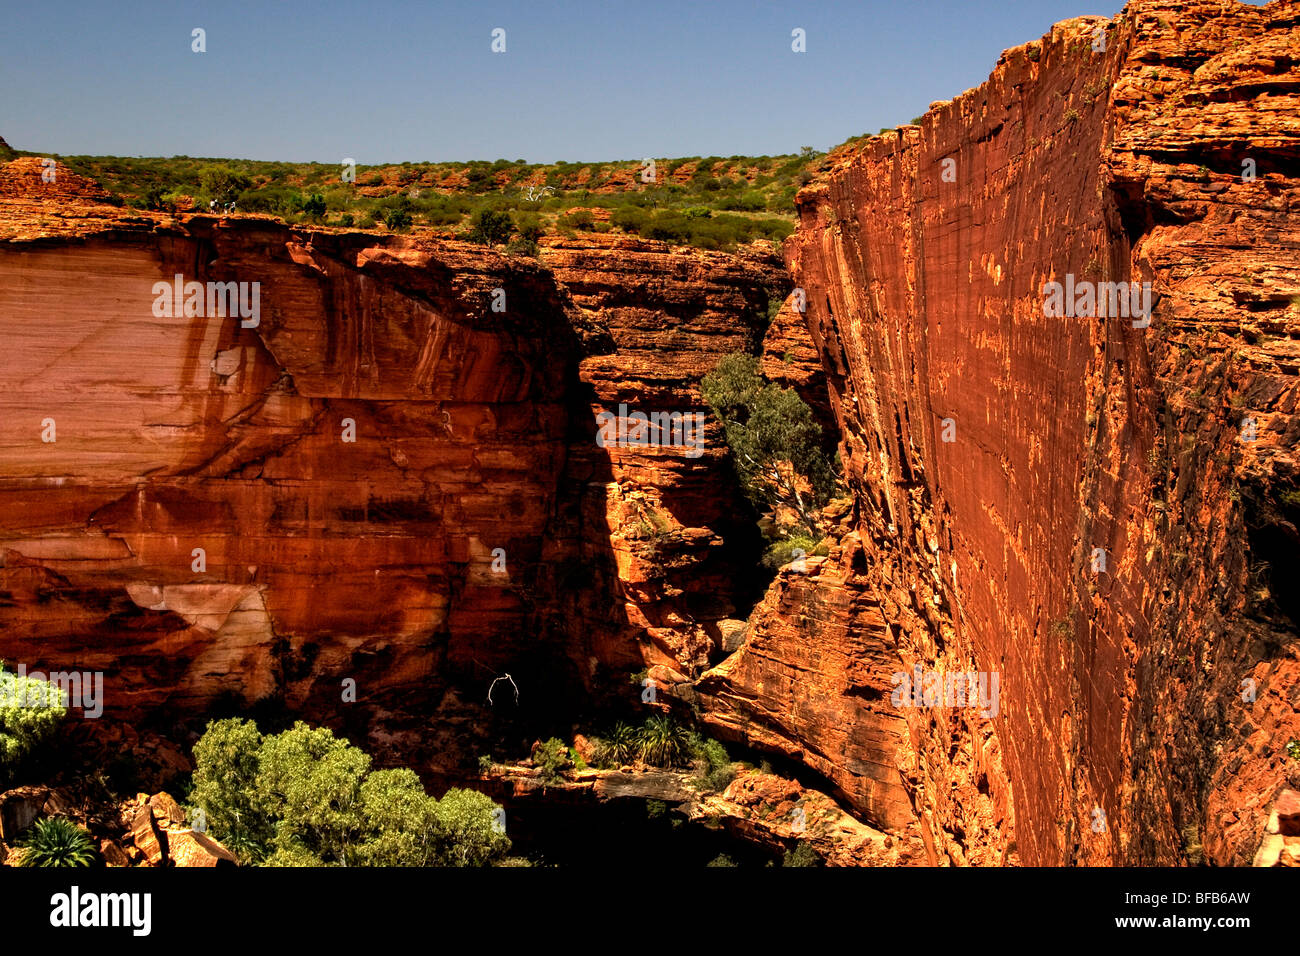 View into Kings Canyon from the rim walk, Northern Territory, Australia - Stock Image